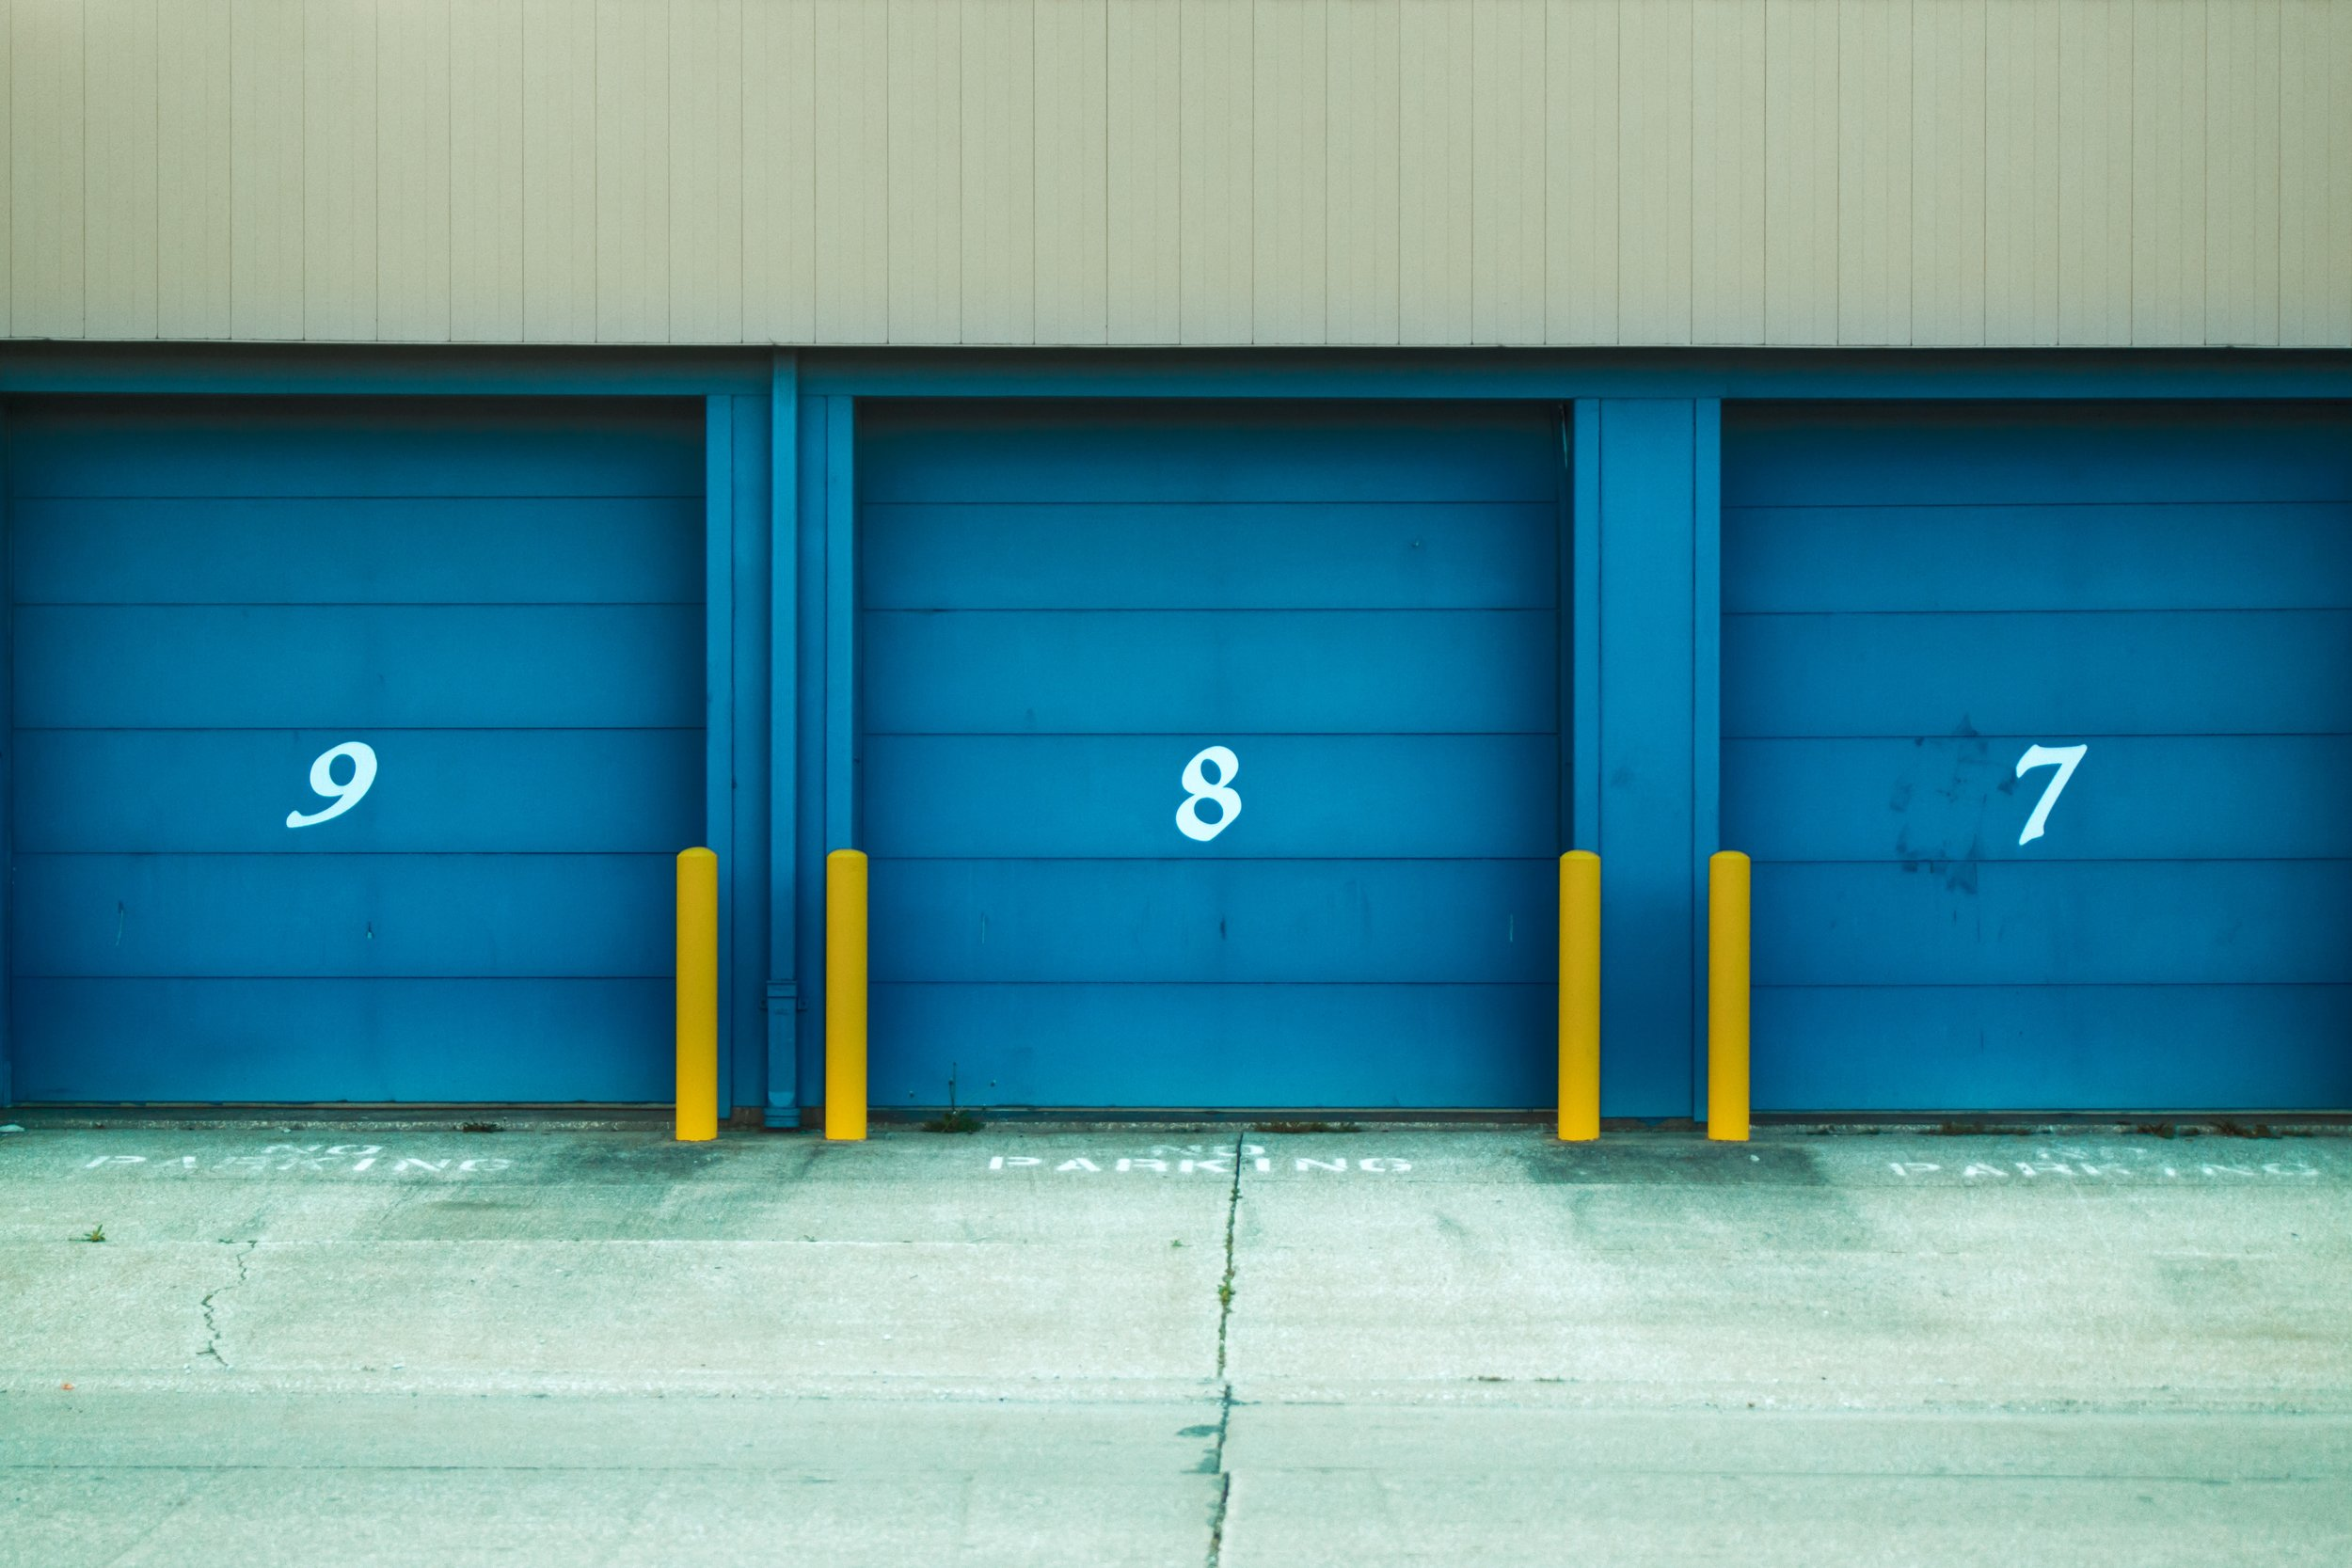 Three bright blue storage unit doors labeled 9, 8, and 7